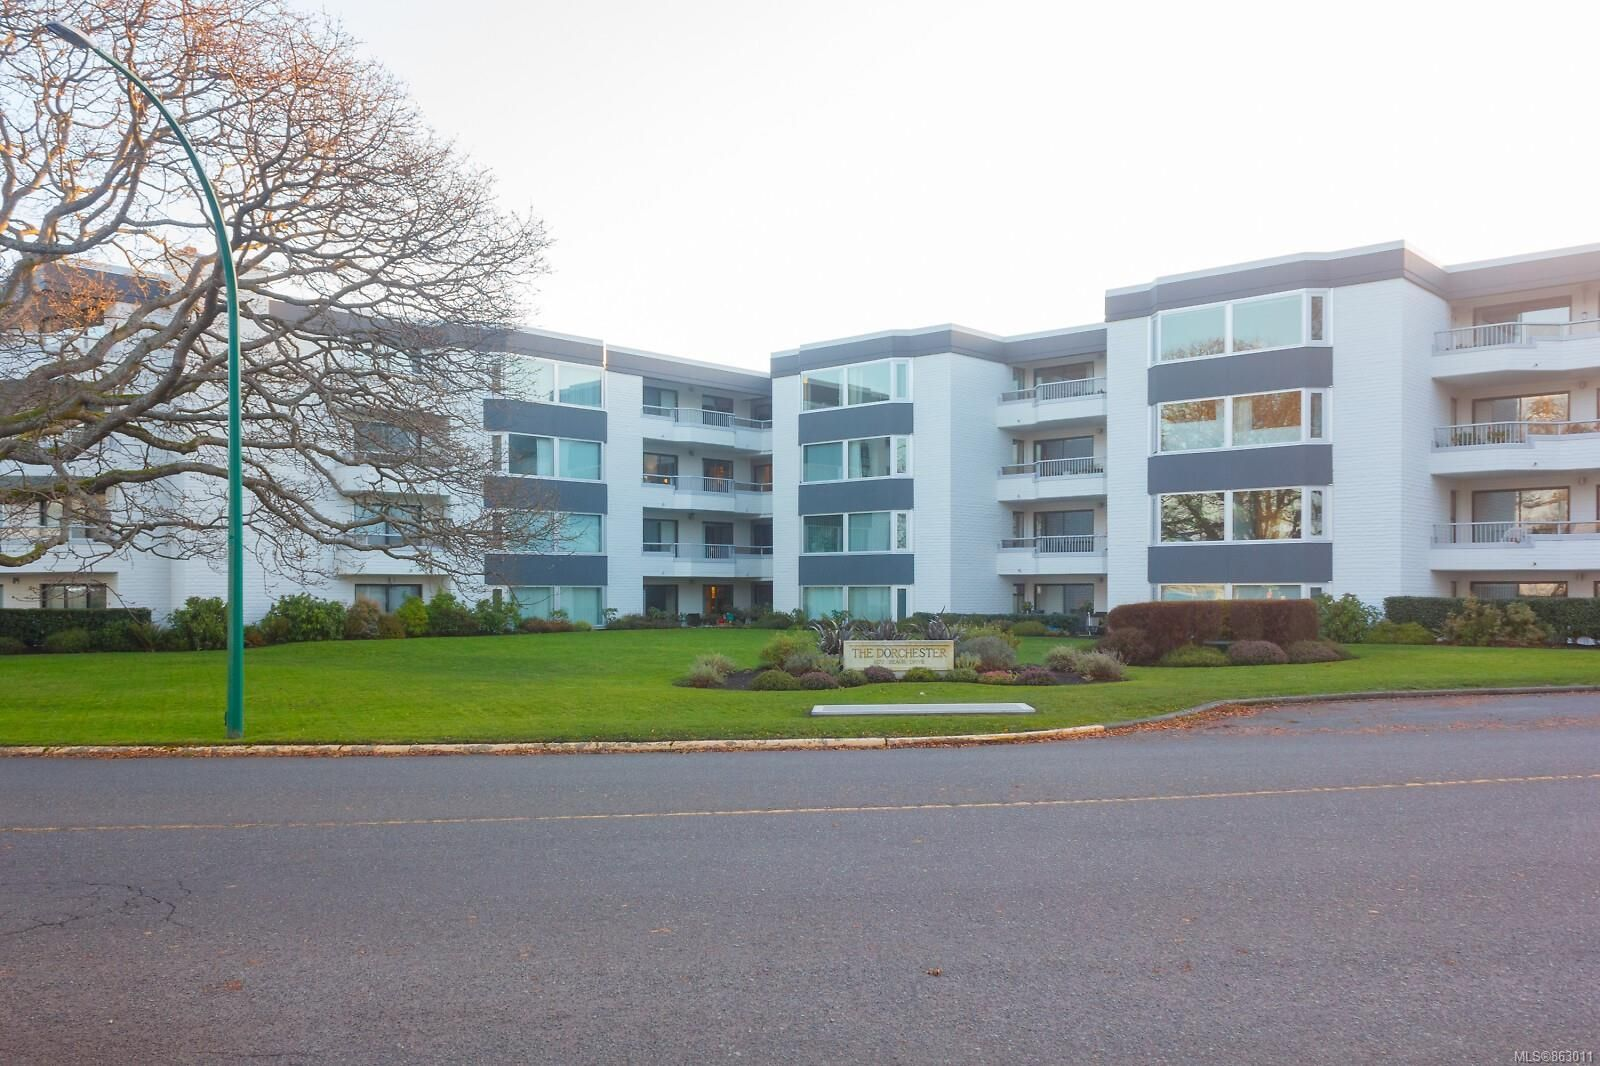 Main Photo: 404 1370 Beach Dr in : OB South Oak Bay Condo for sale (Oak Bay)  : MLS®# 863011